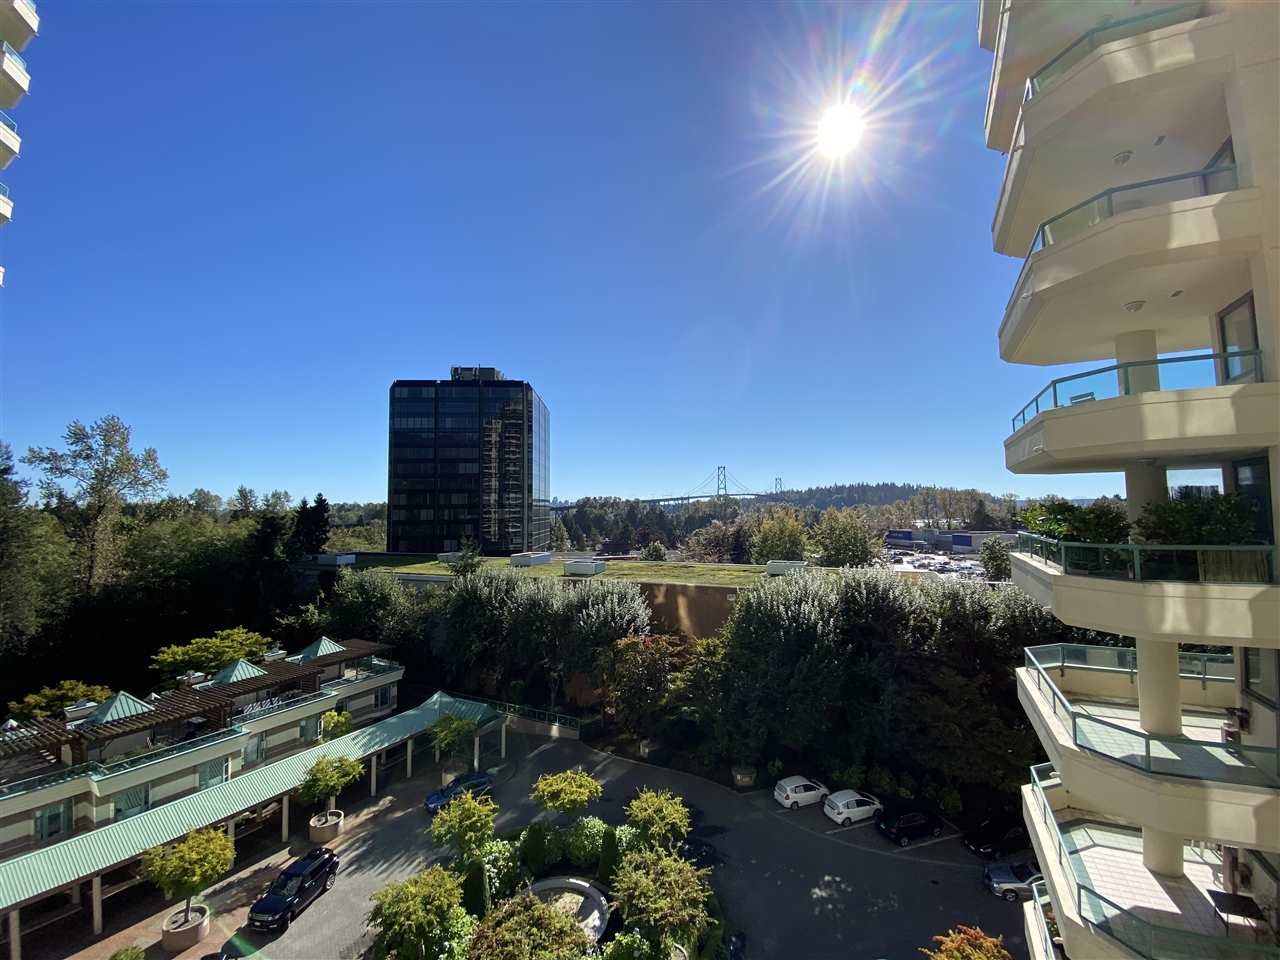 8A 328 TAYLOR WAY - Park Royal Apartment/Condo for sale, 2 Bedrooms (R2507323) - #1